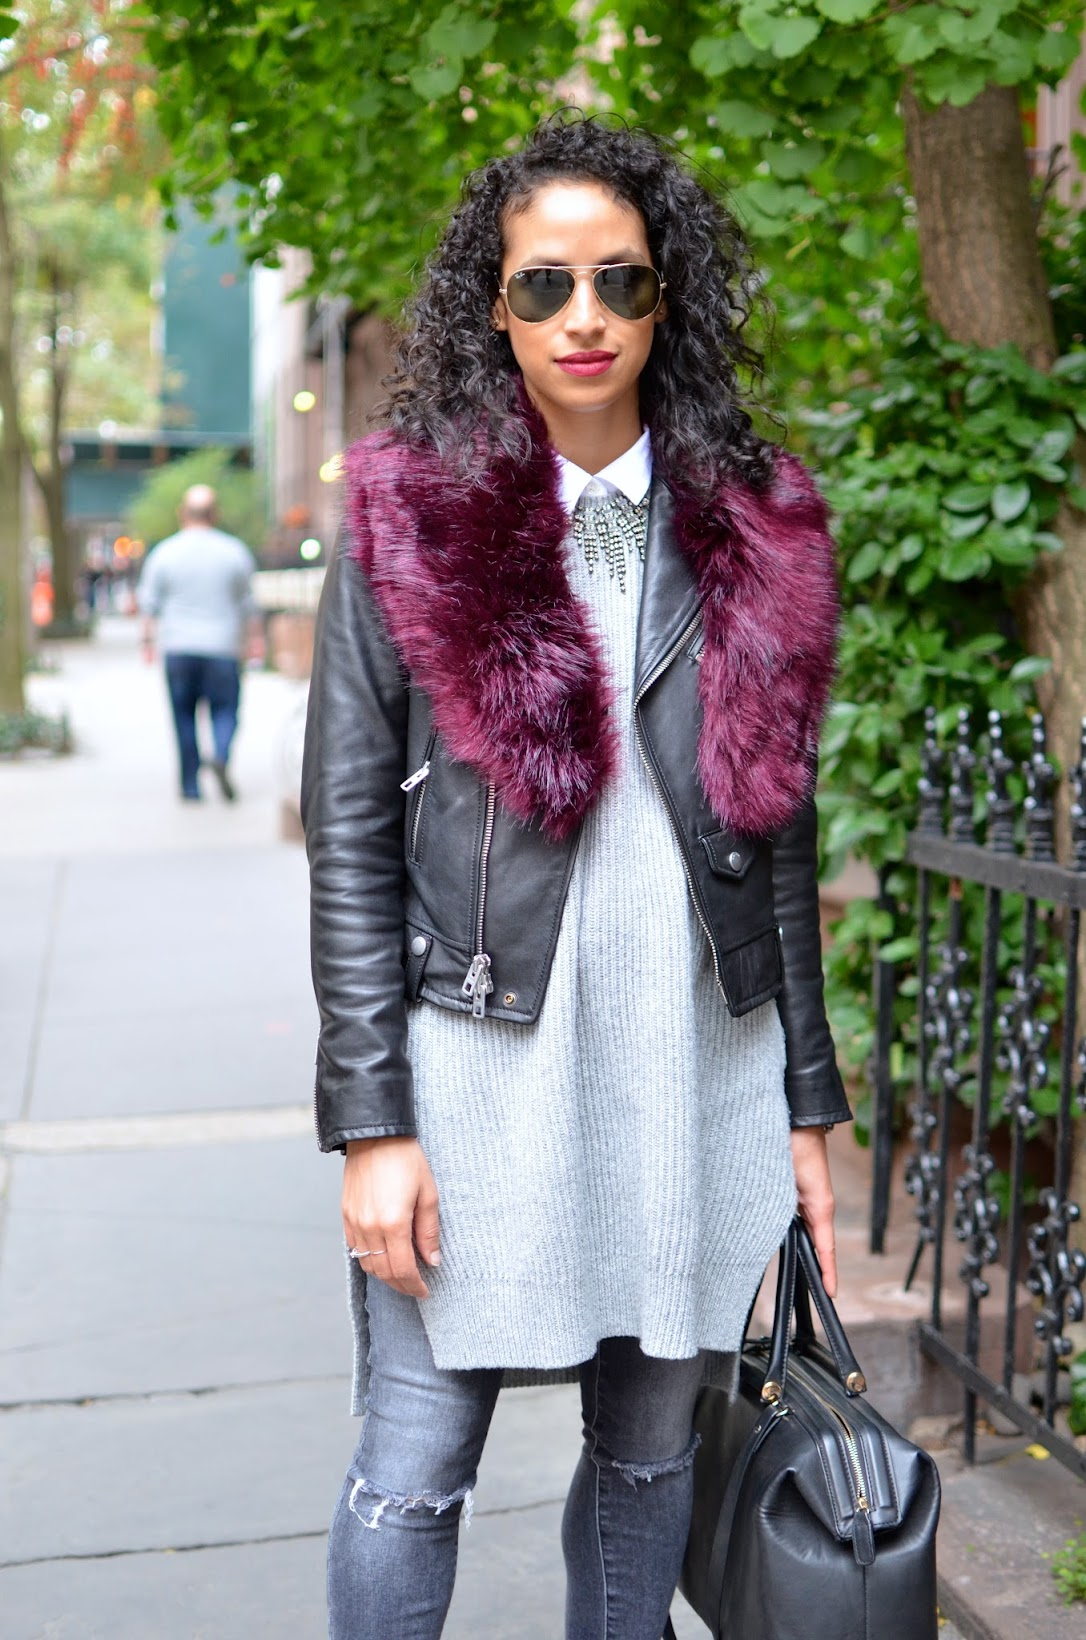 nyc fall style, Fall style, Faux fur stole, Missguided fur stole, what to wear in NYC this fall, all grey style, chic fall style